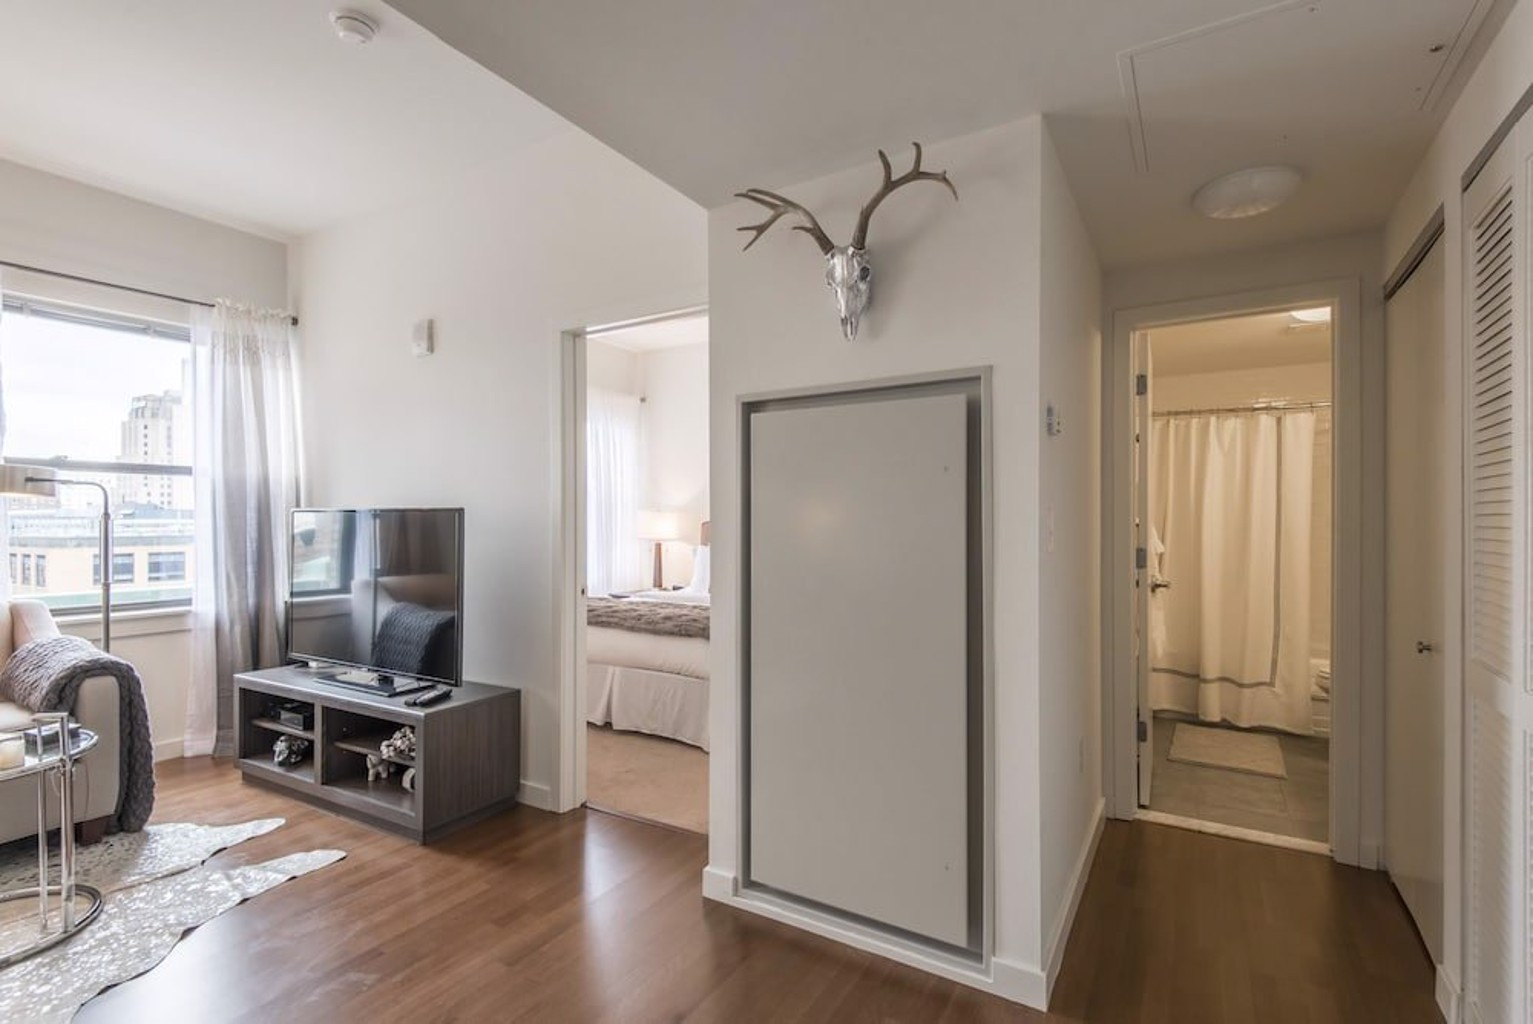 Private 1BR in Heart of Center City